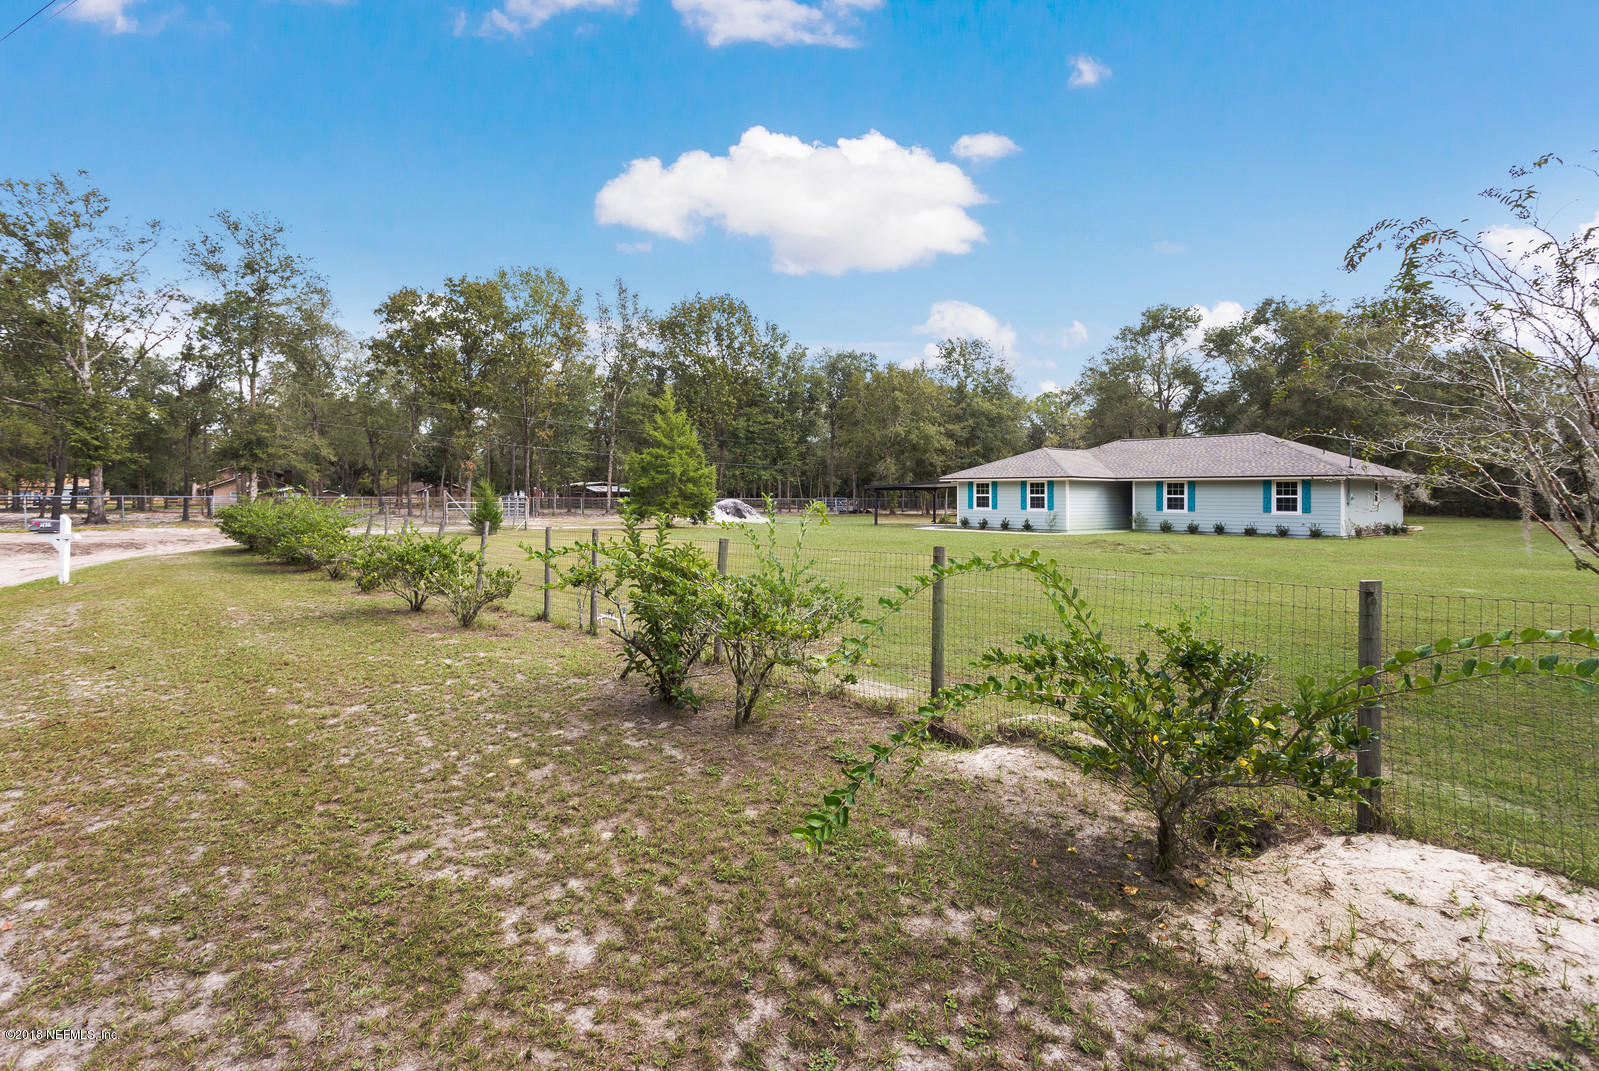 2822 EAGLE POINT, MIDDLEBURG, FLORIDA 32068, 3 Bedrooms Bedrooms, ,2 BathroomsBathrooms,Residential - single family,For sale,EAGLE POINT,964680